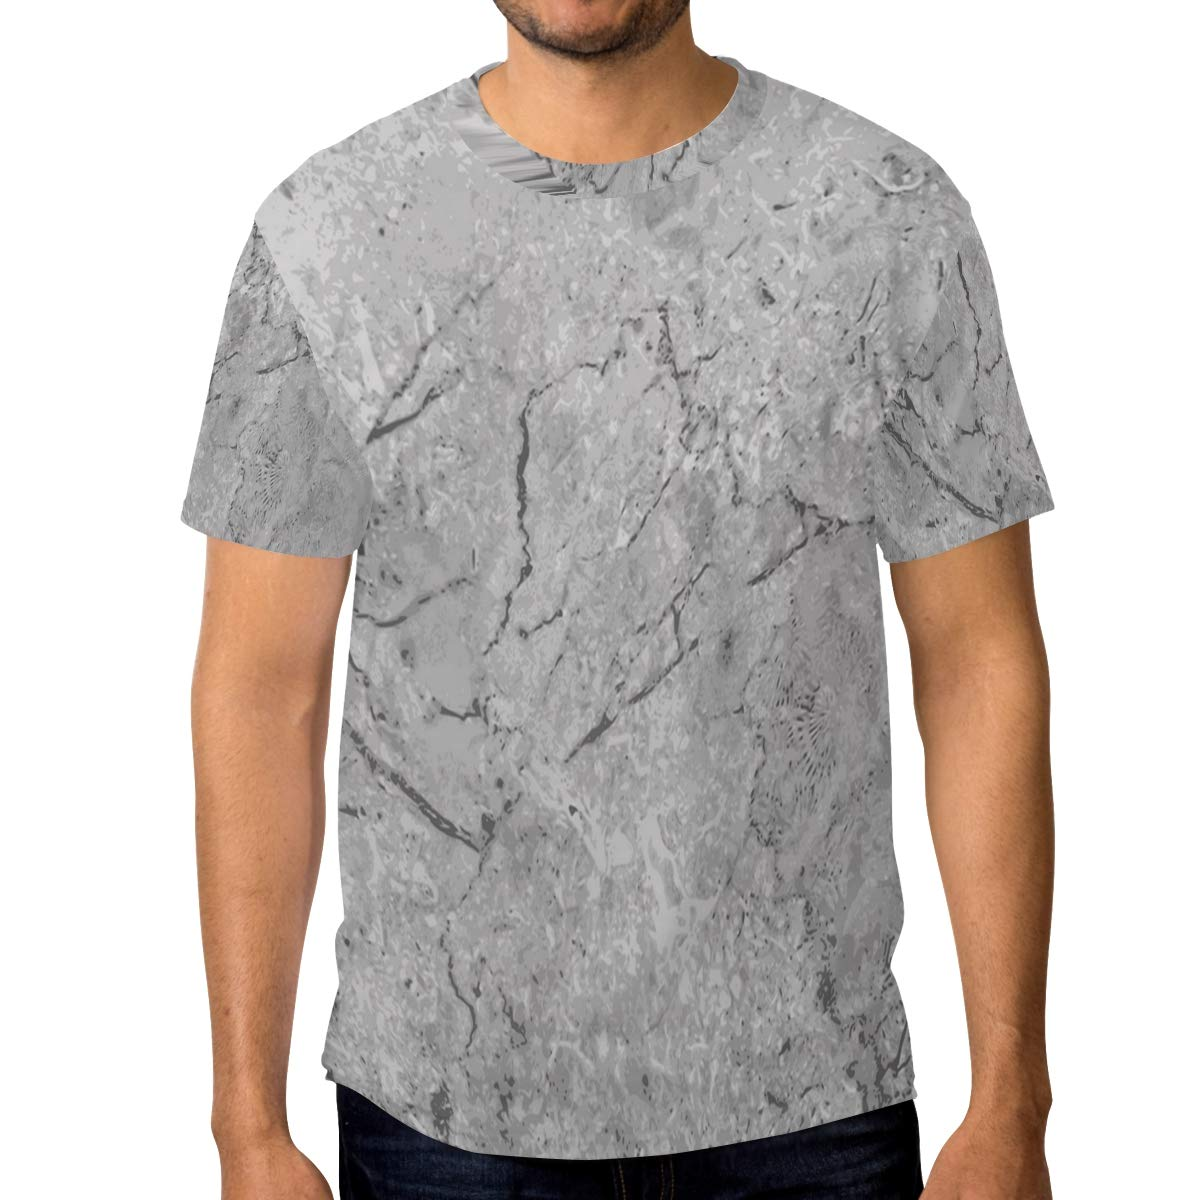 Horatiood Huberyyd Gradient Marble Pattern Mens T Shirts Graphic Funny Body Print Short T-Shirt Unisex Pullover Blouse